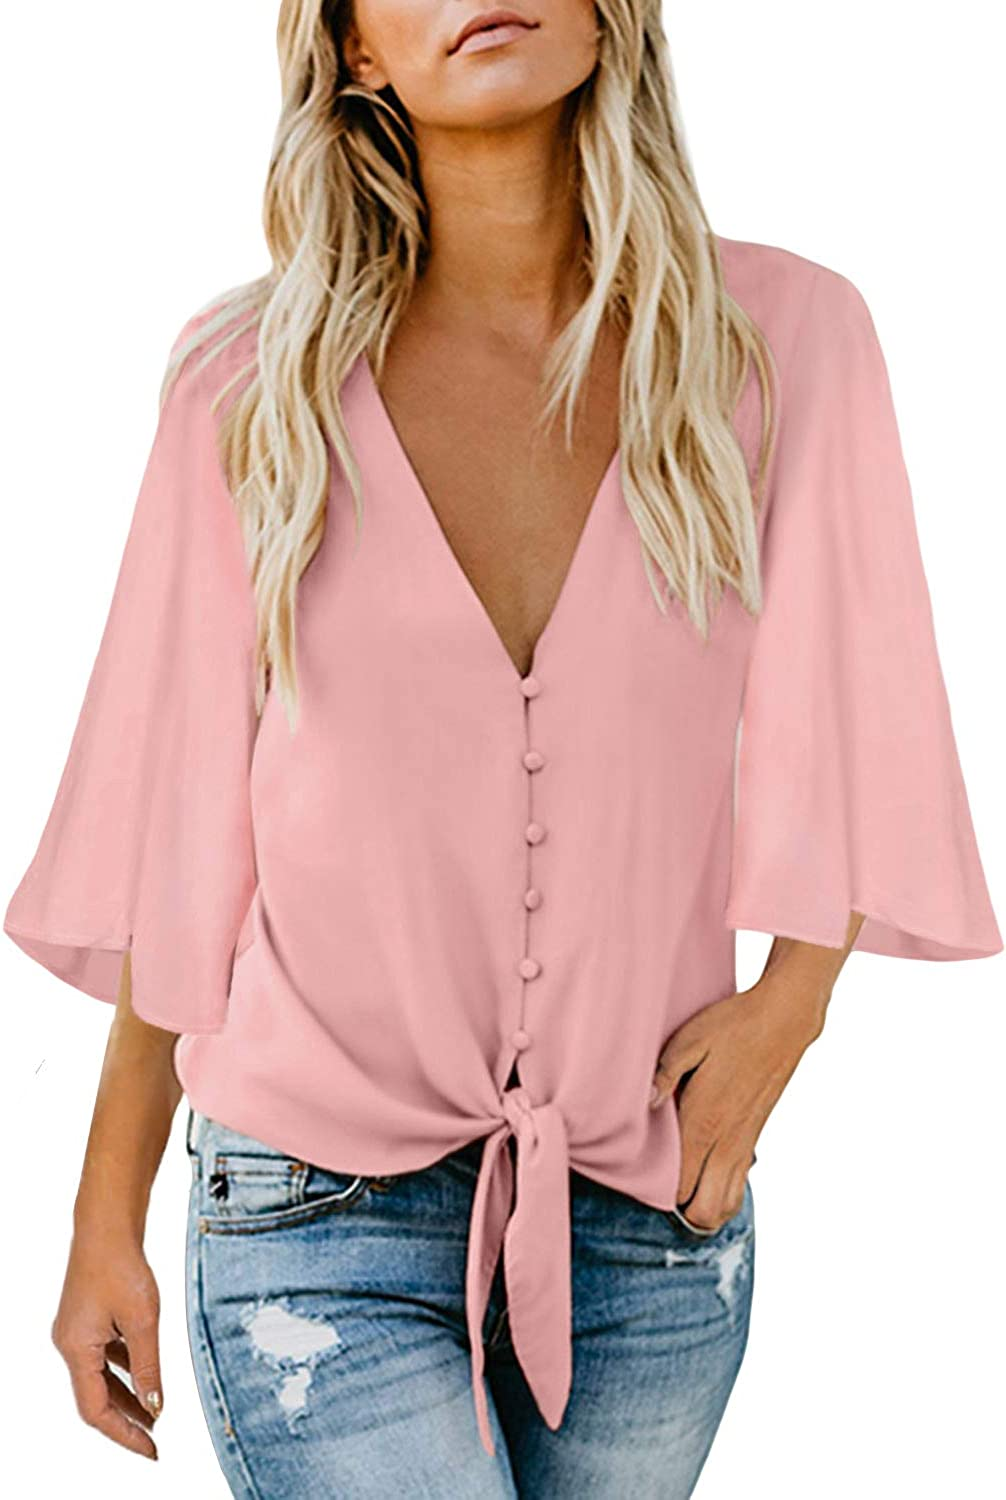 Asvivid Womens Summer Button Down V Neck Tops Bell Sleeve Chiffon Blouses Casual Loose Tie Knot T-Shirt